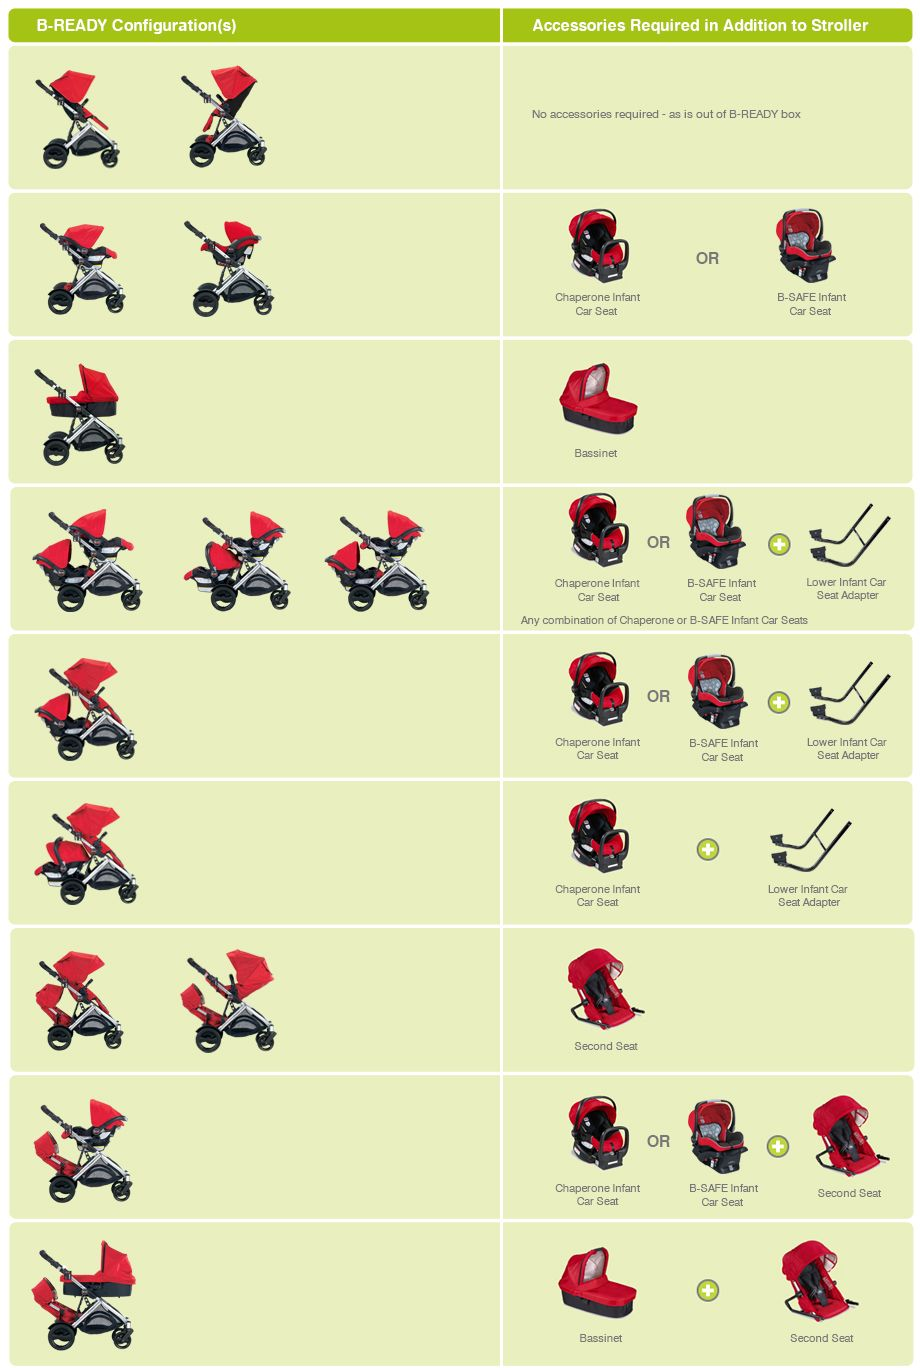 43+ Britax stroller board with second seat information